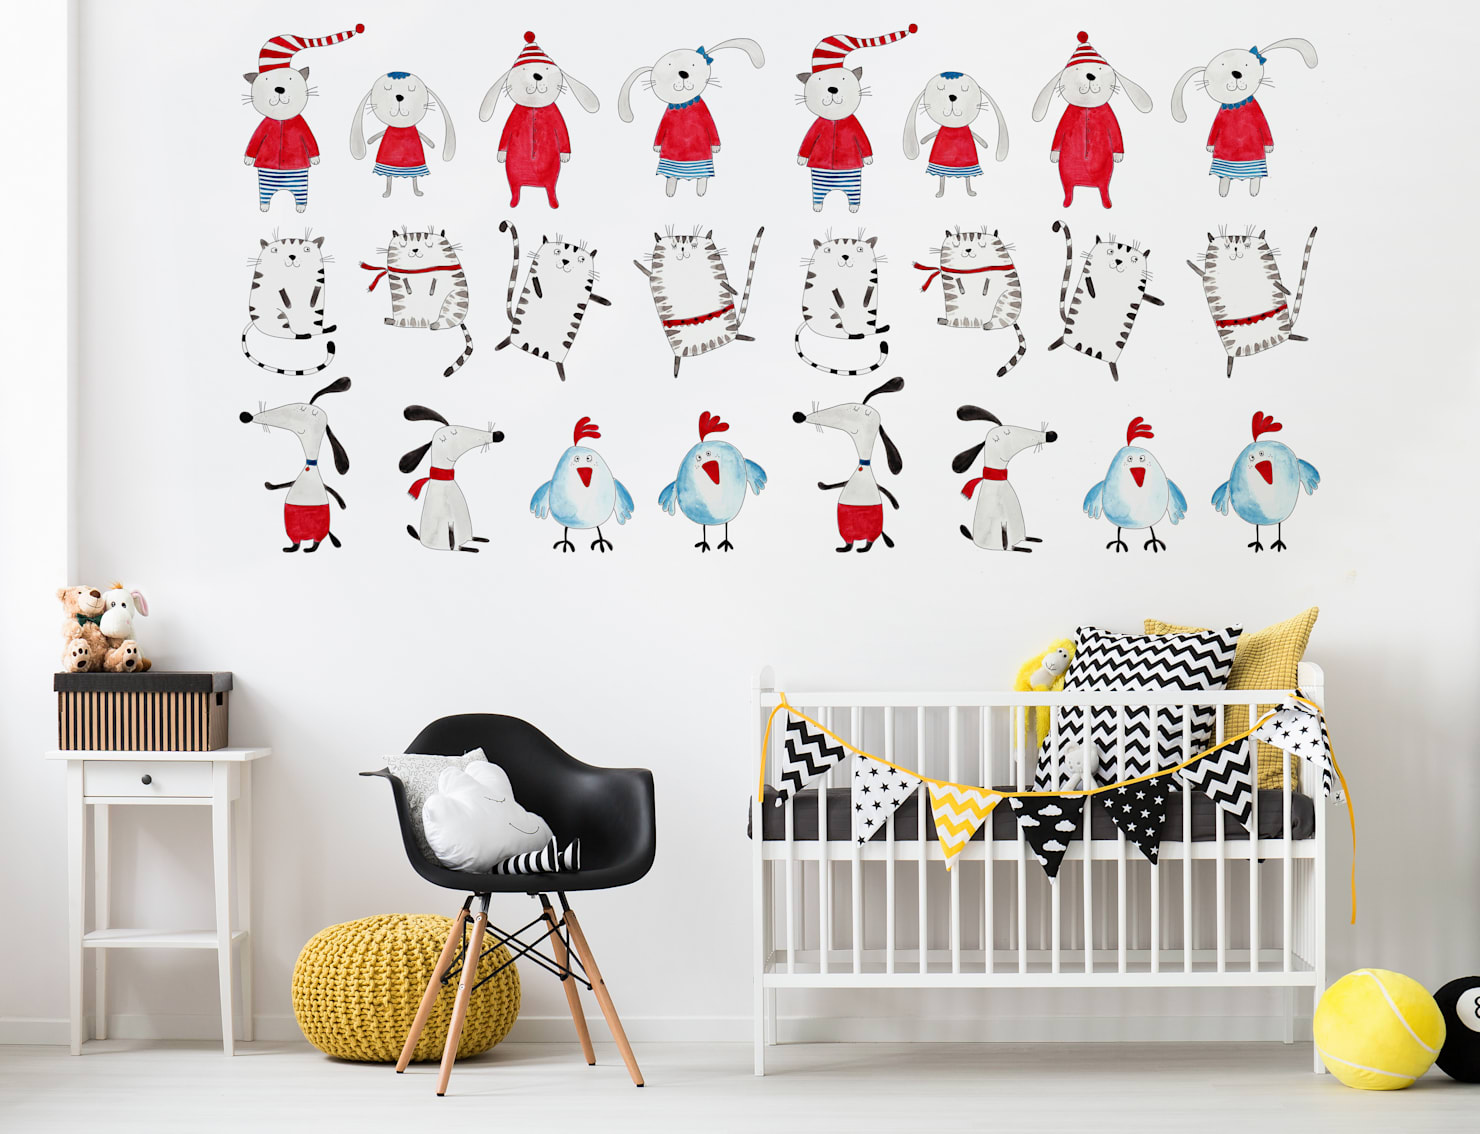 Nursery design ideas to earn you cool parent points!